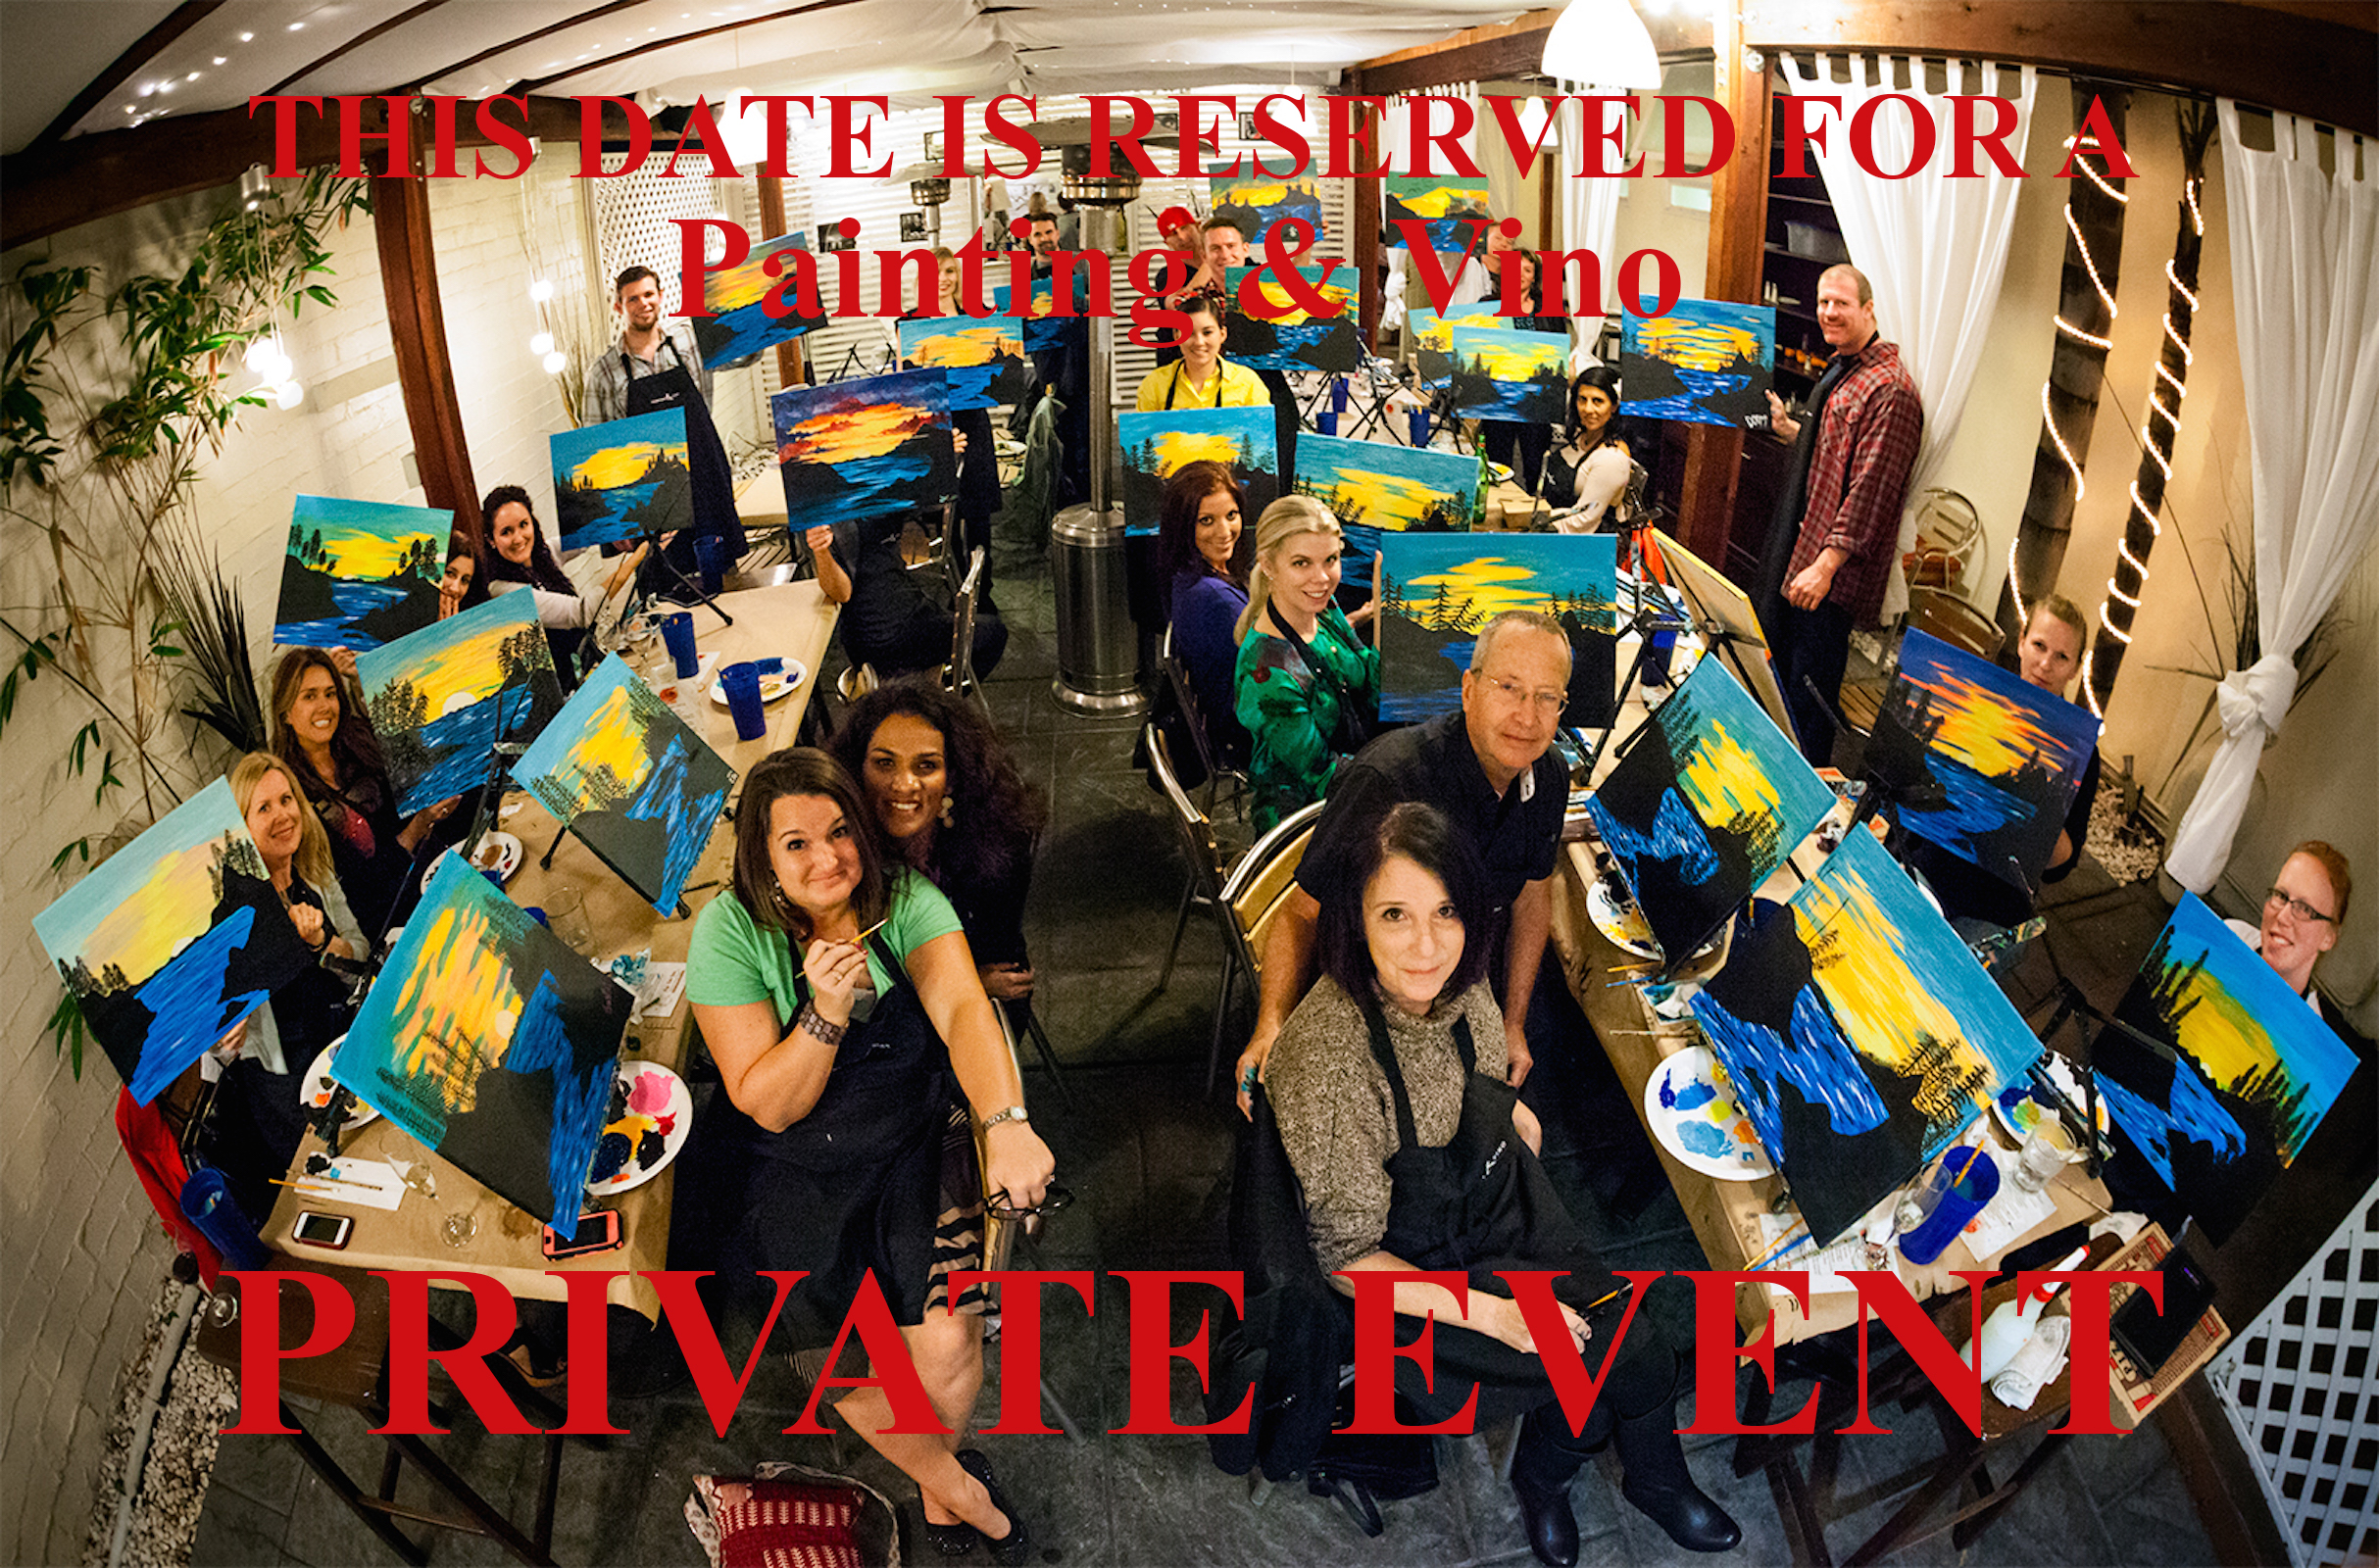 Girl Scouts Private Event - Live online